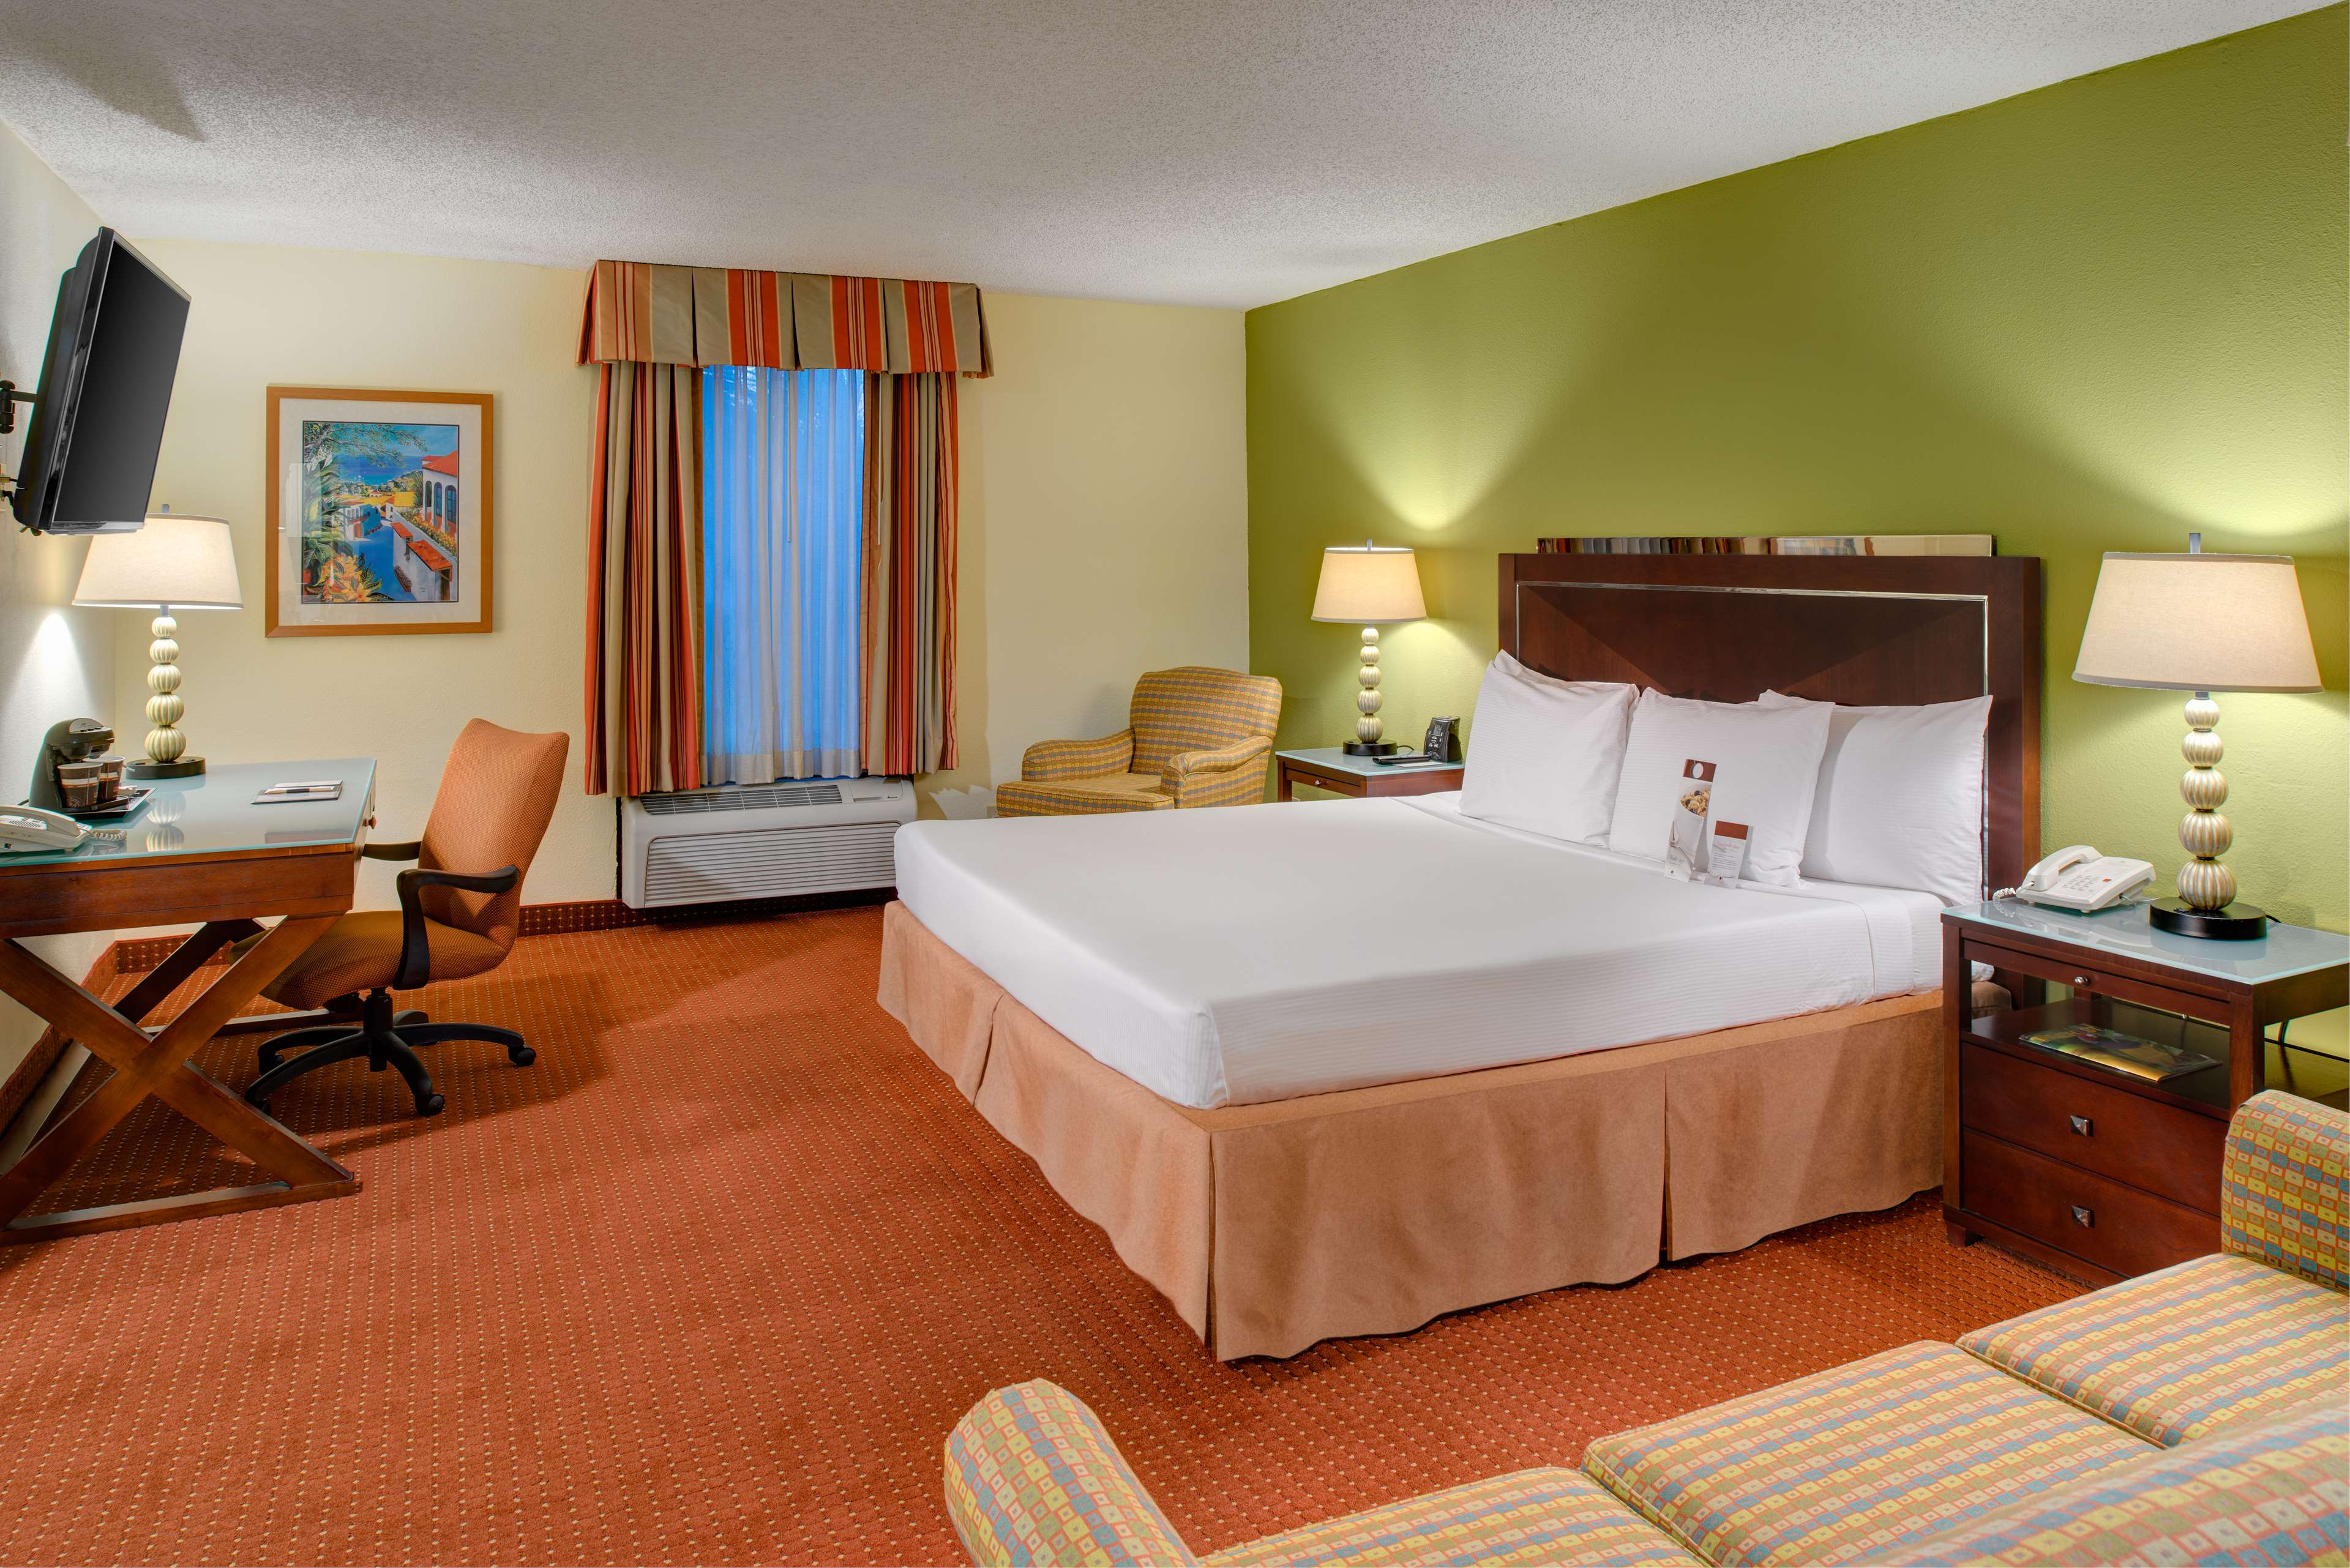 Doubletree By Hilton Hotel And Executive Meeting Center Palm Beach Gardens In Palm Beach Gardens